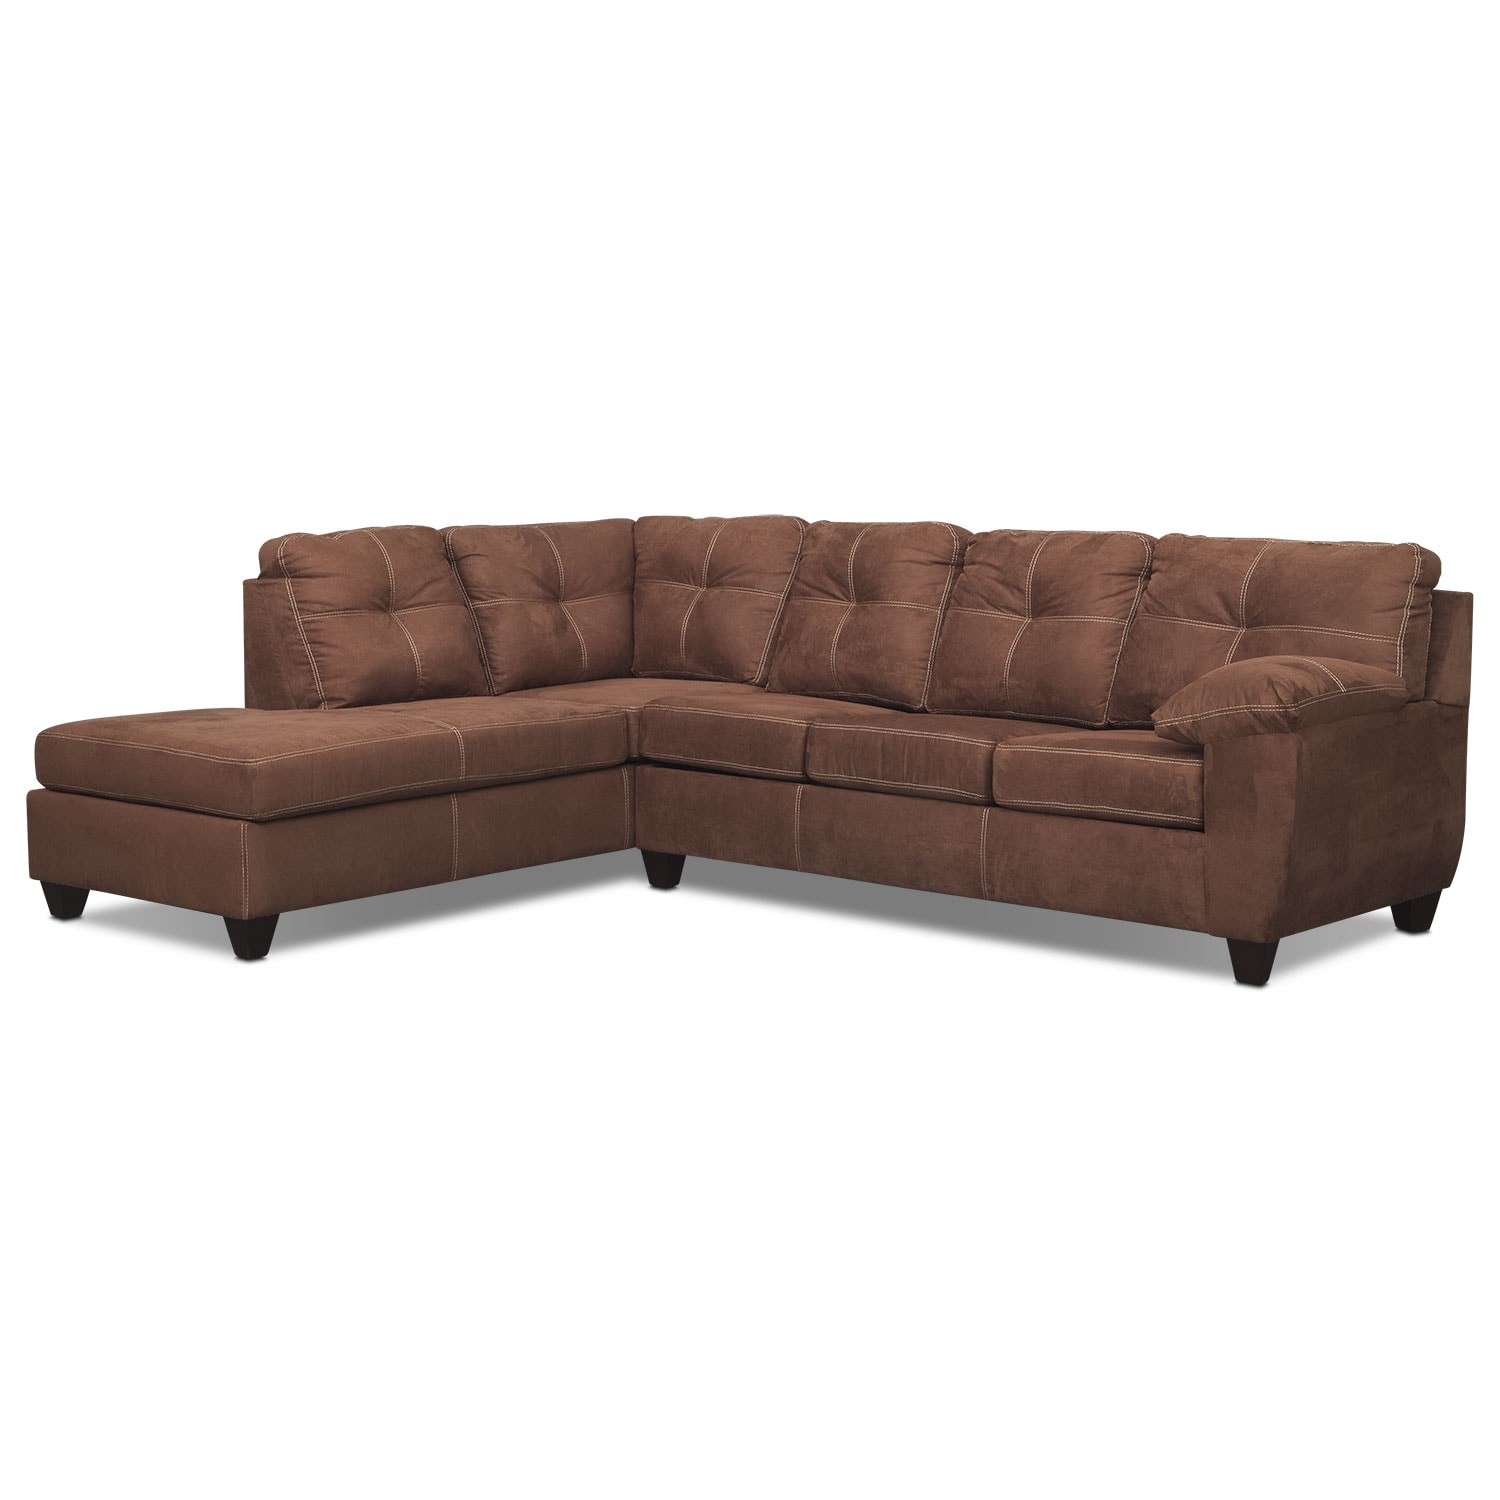 Ricardo 2 Piece Innerspring Sleeper Sectional With Chaise